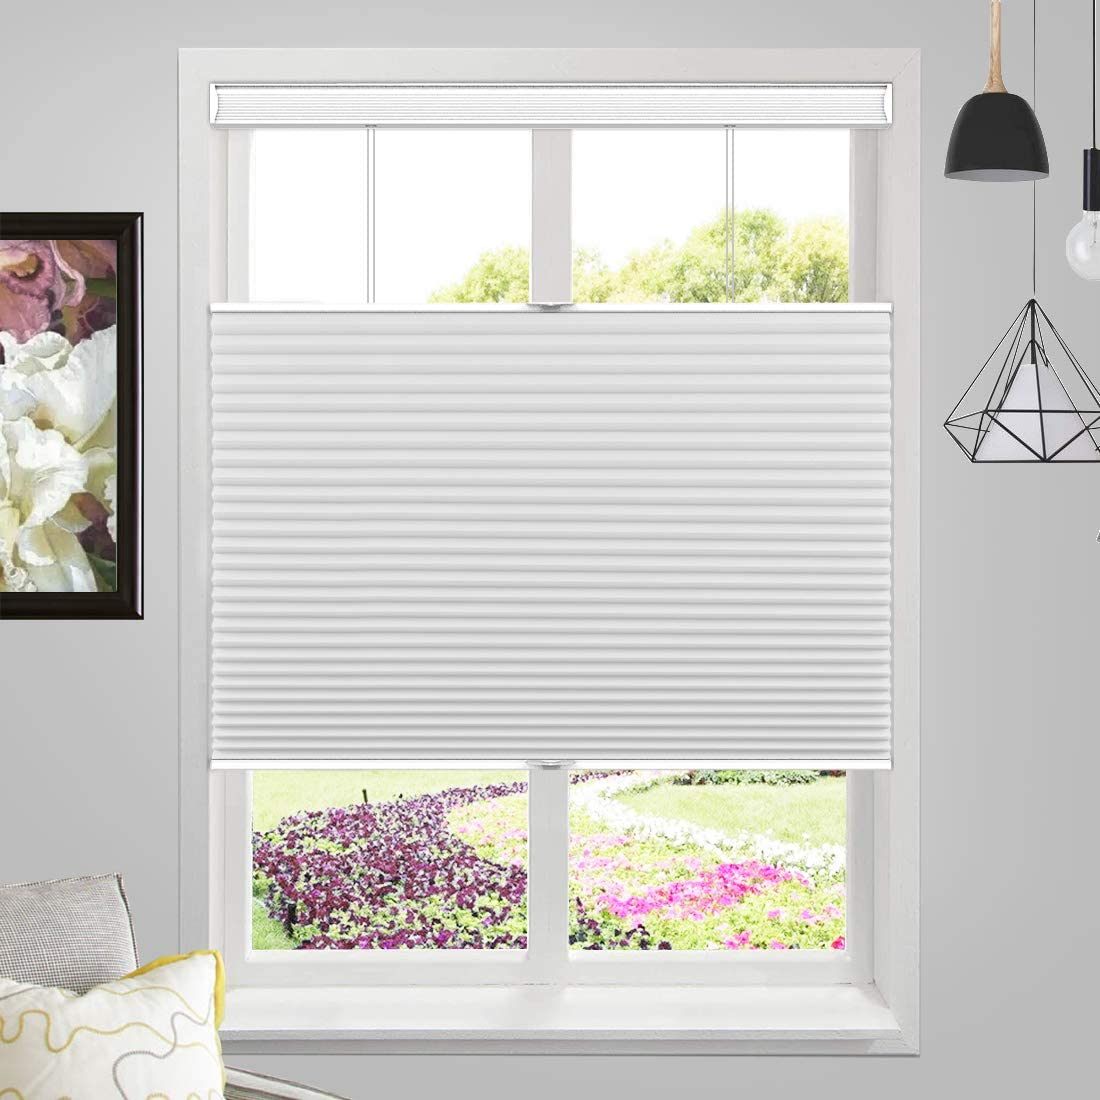 MiLin Cordless Blackout Cellular Honeycomb Shades Top Down Bottom Up Fast Delivery Bedroom Kitchen Window Blinds and Shades Custom Cut to Size Frost White 19 1//2 W x 72 H